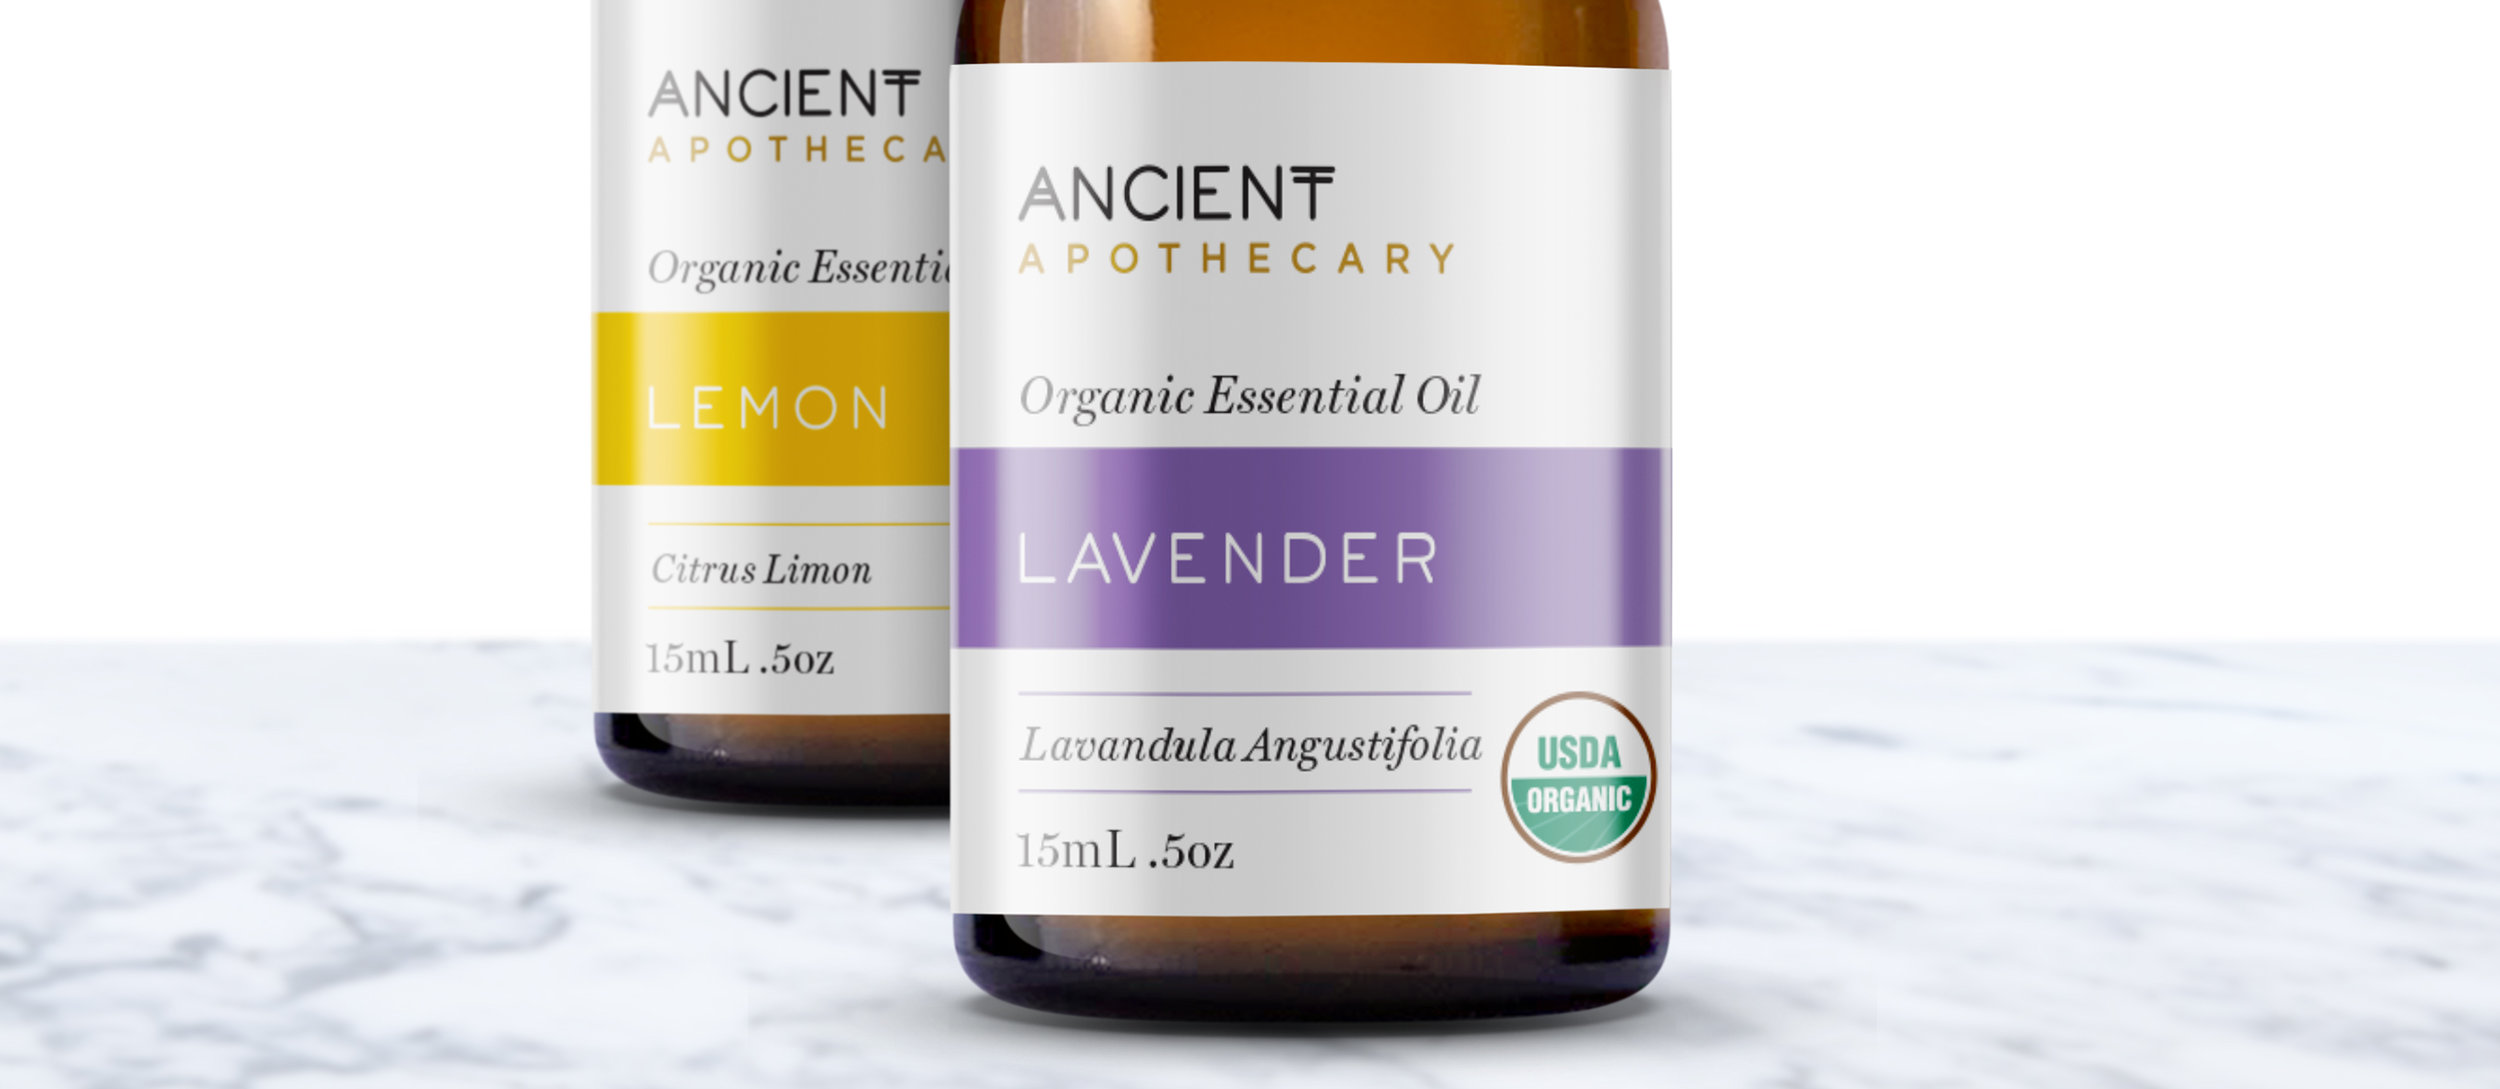 Apothecary Package Design